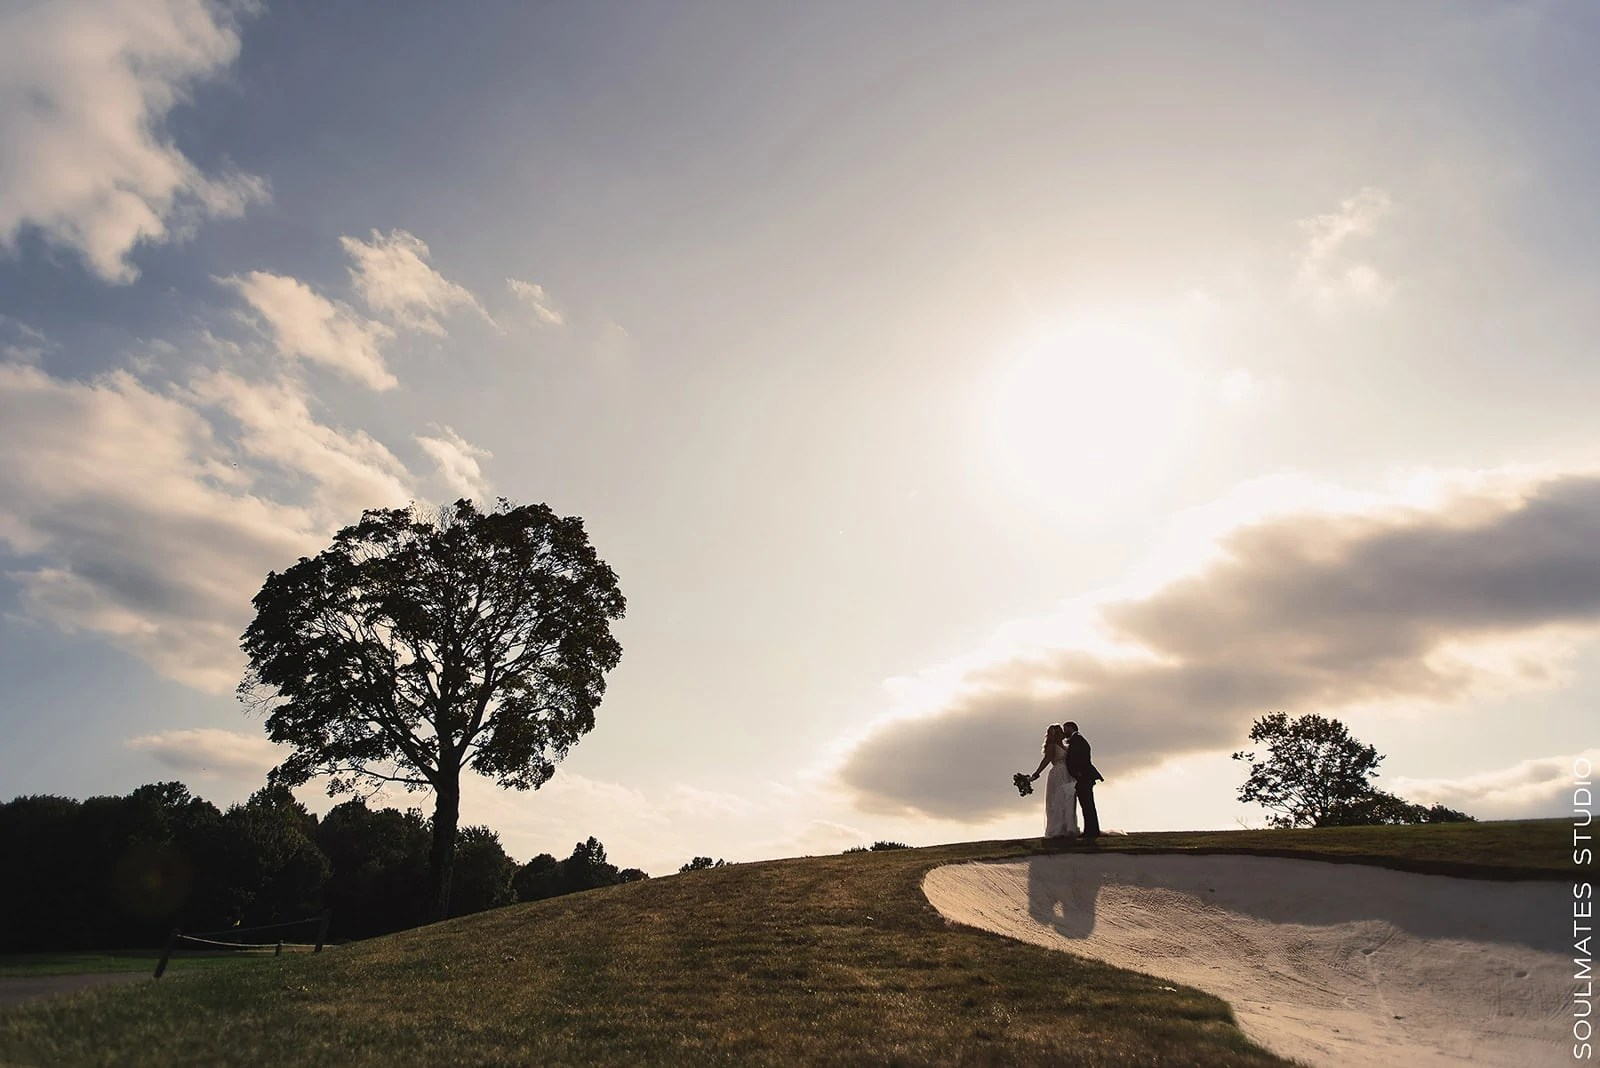 Sunset wedding portrait at the Paramount Country Club Golf Course